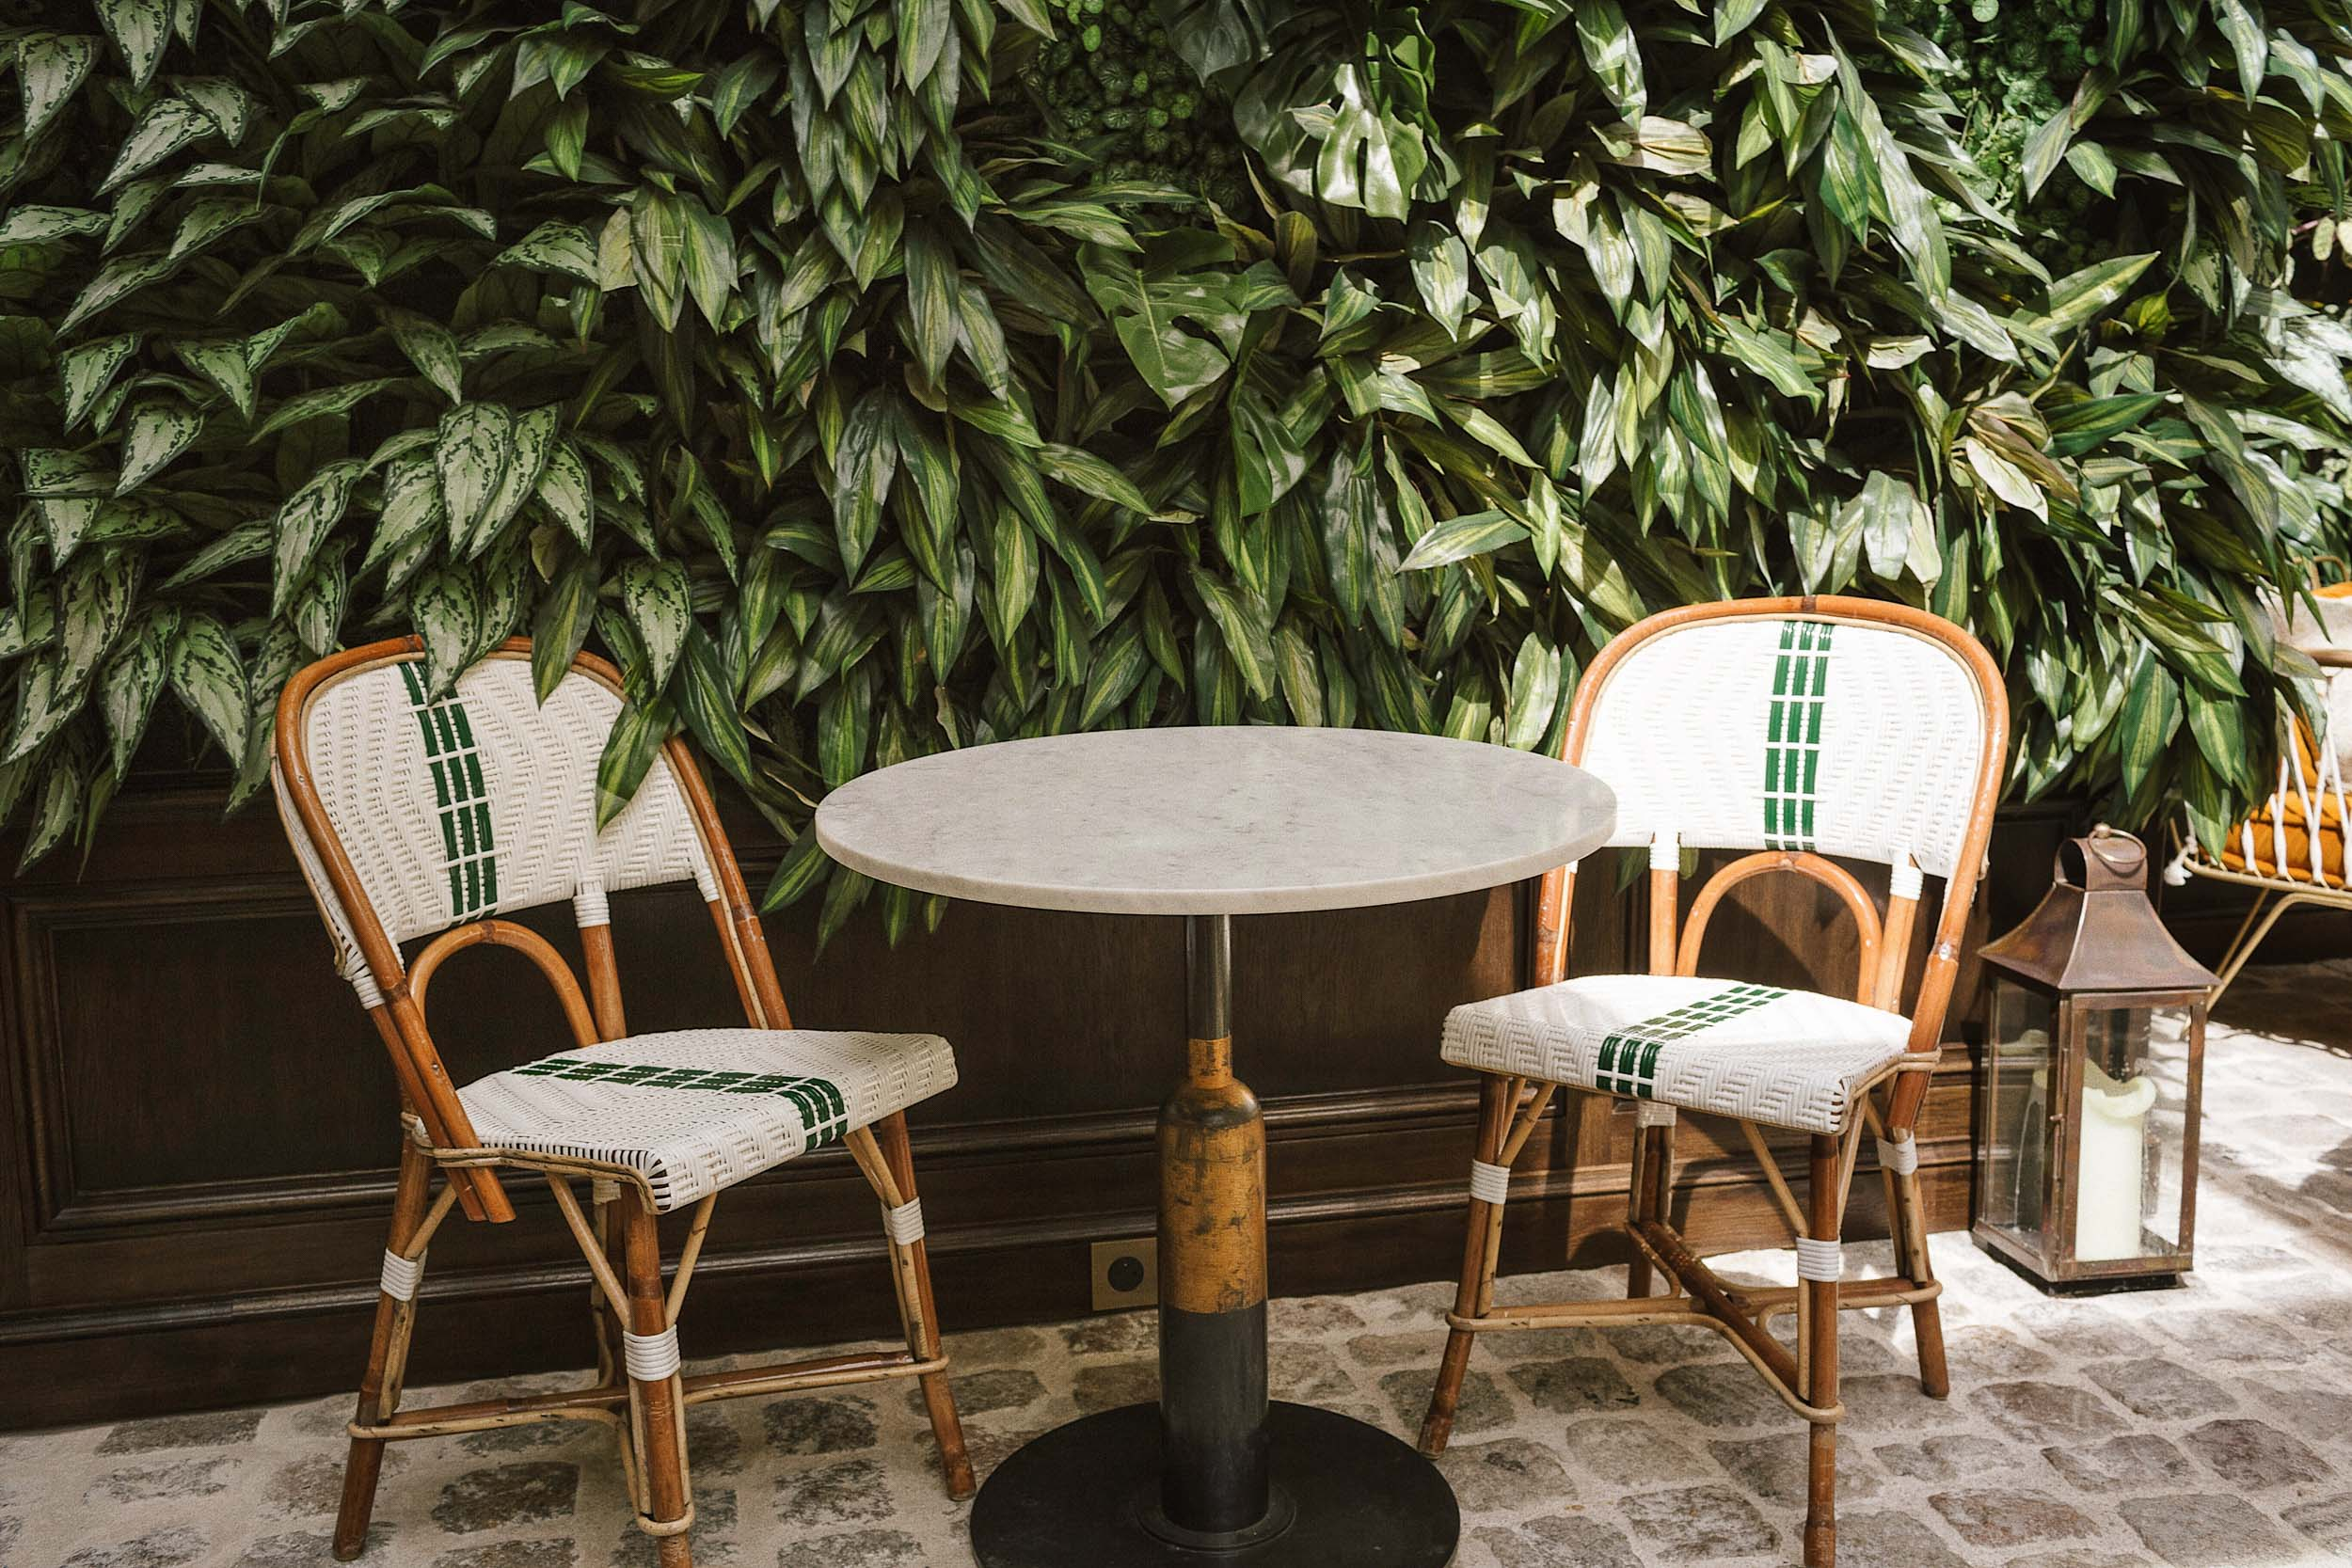 A charming place to sit at The Hoxton Paris